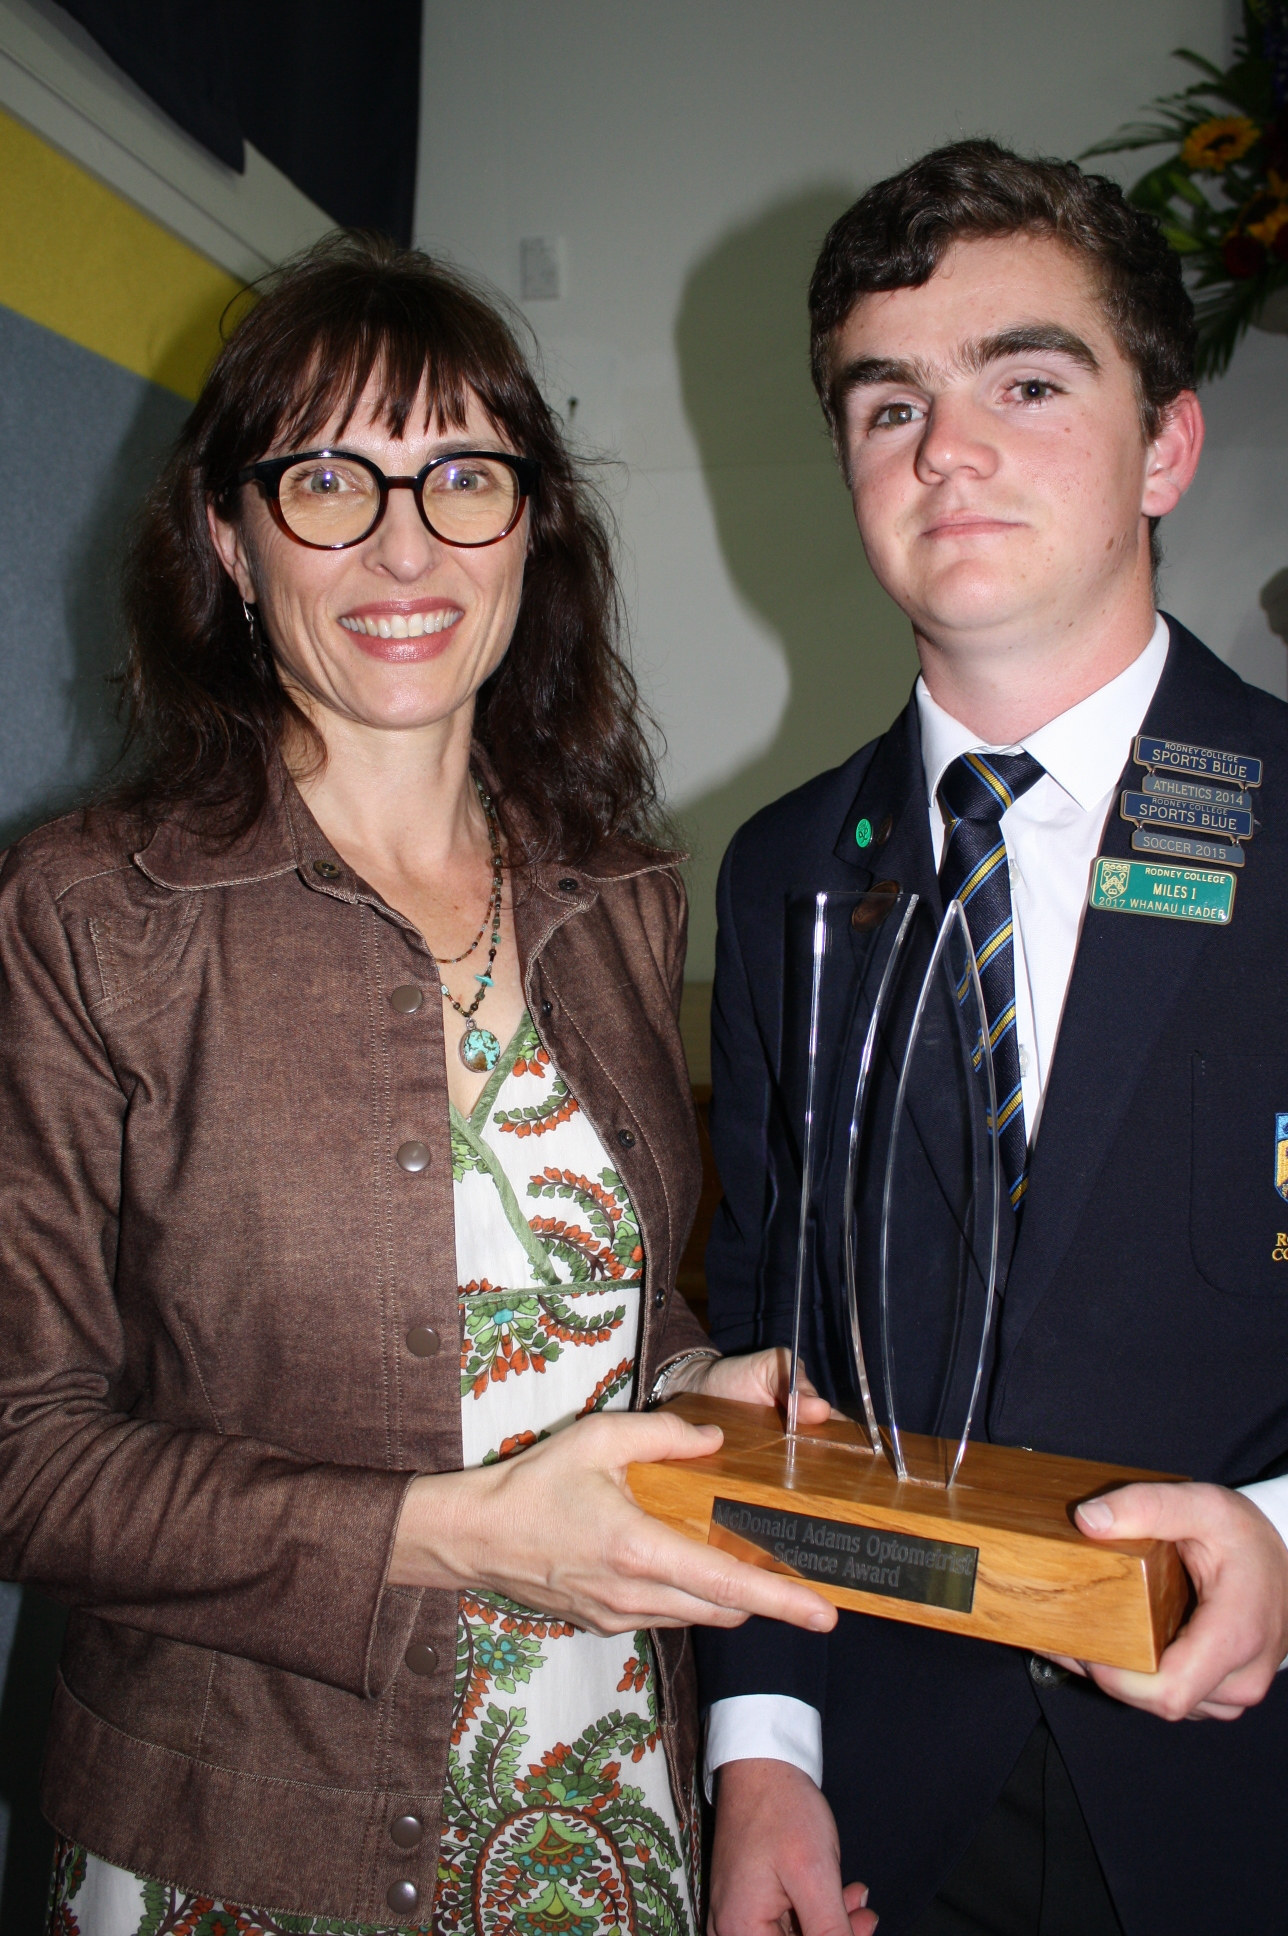 Sally Adams presenting Lachlan Campbell with his Scholarship